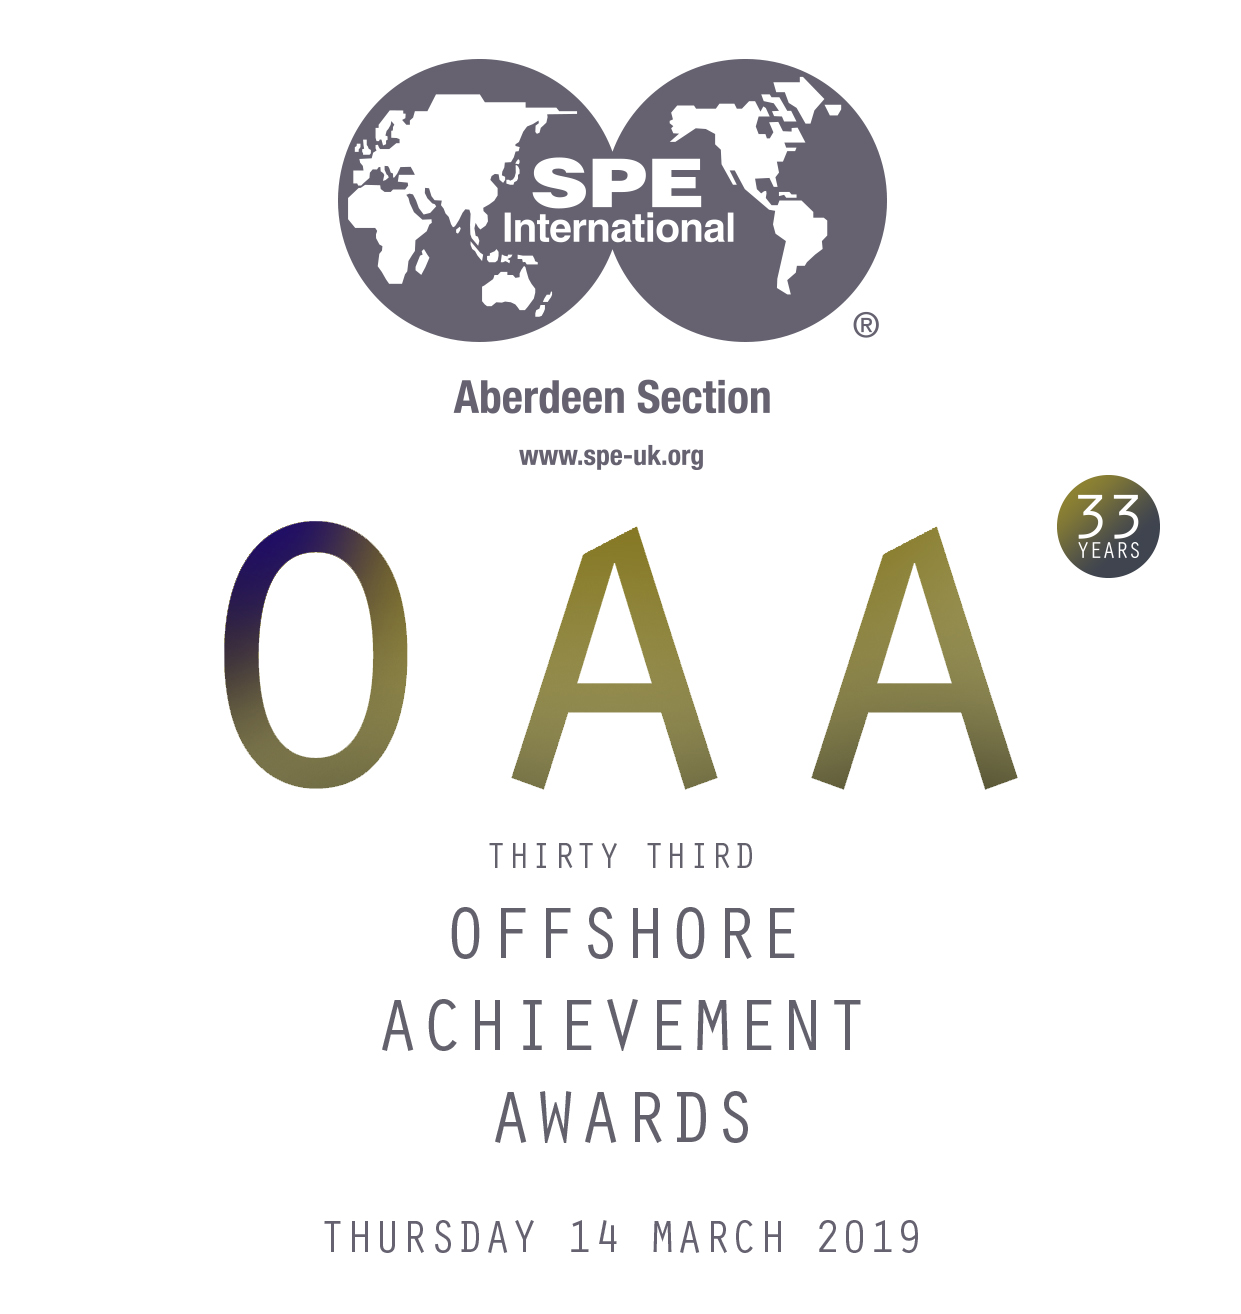 oaa-logo-and-details-2019